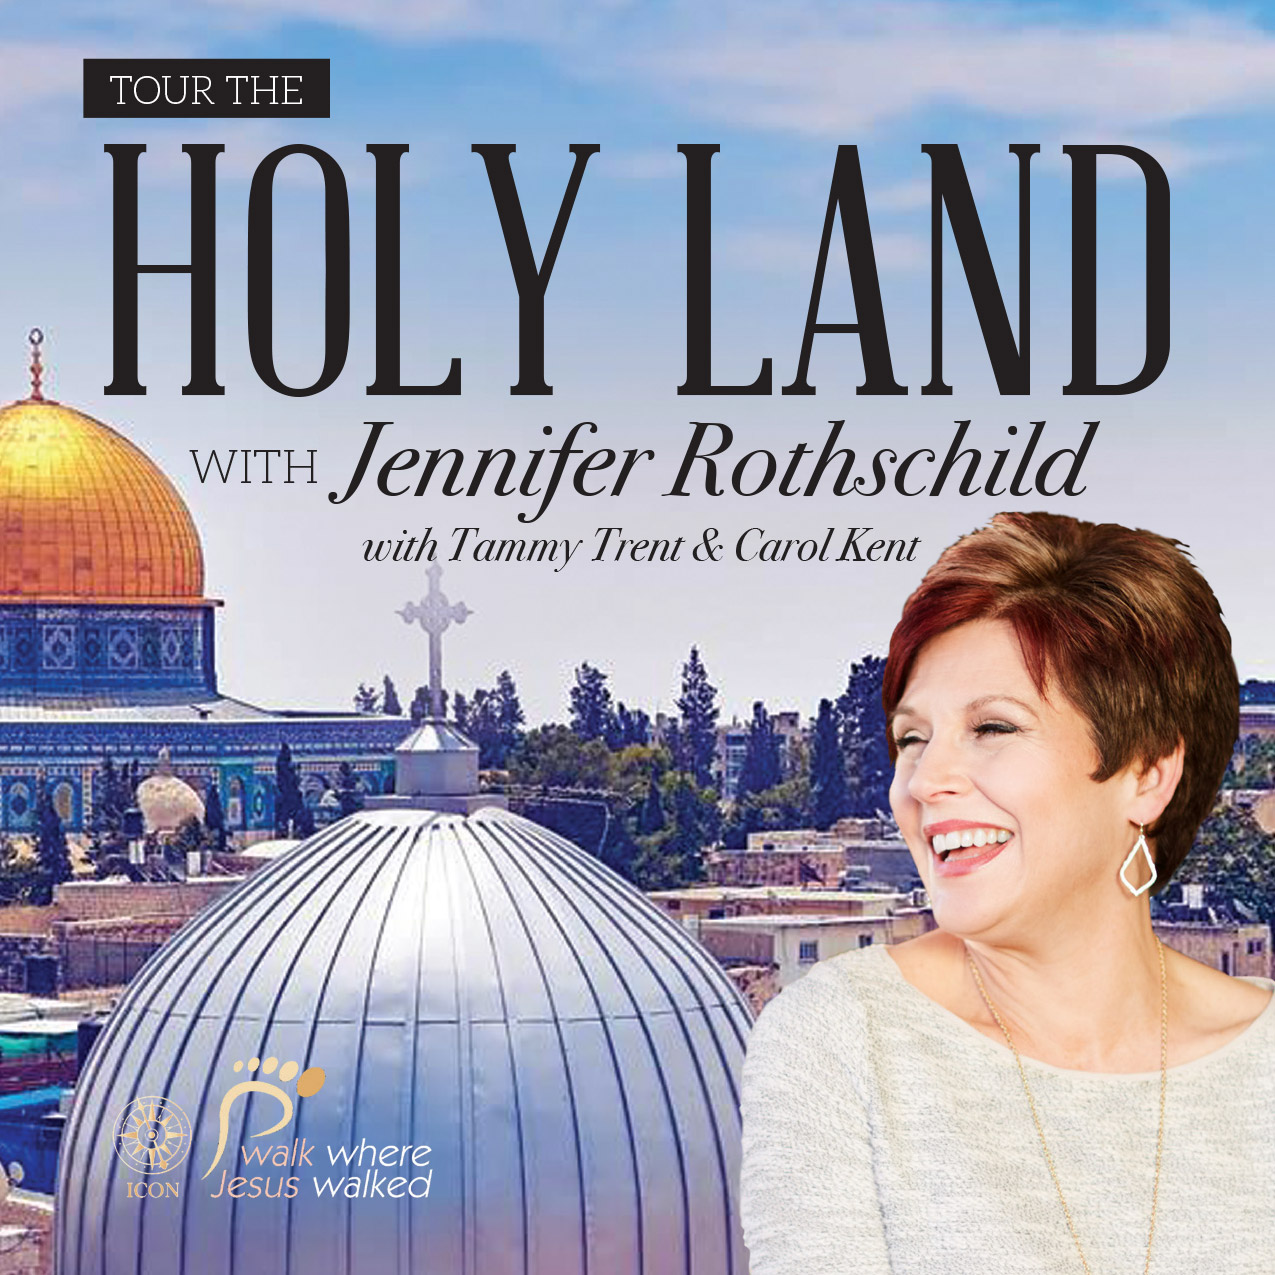 JR Holy Land tour